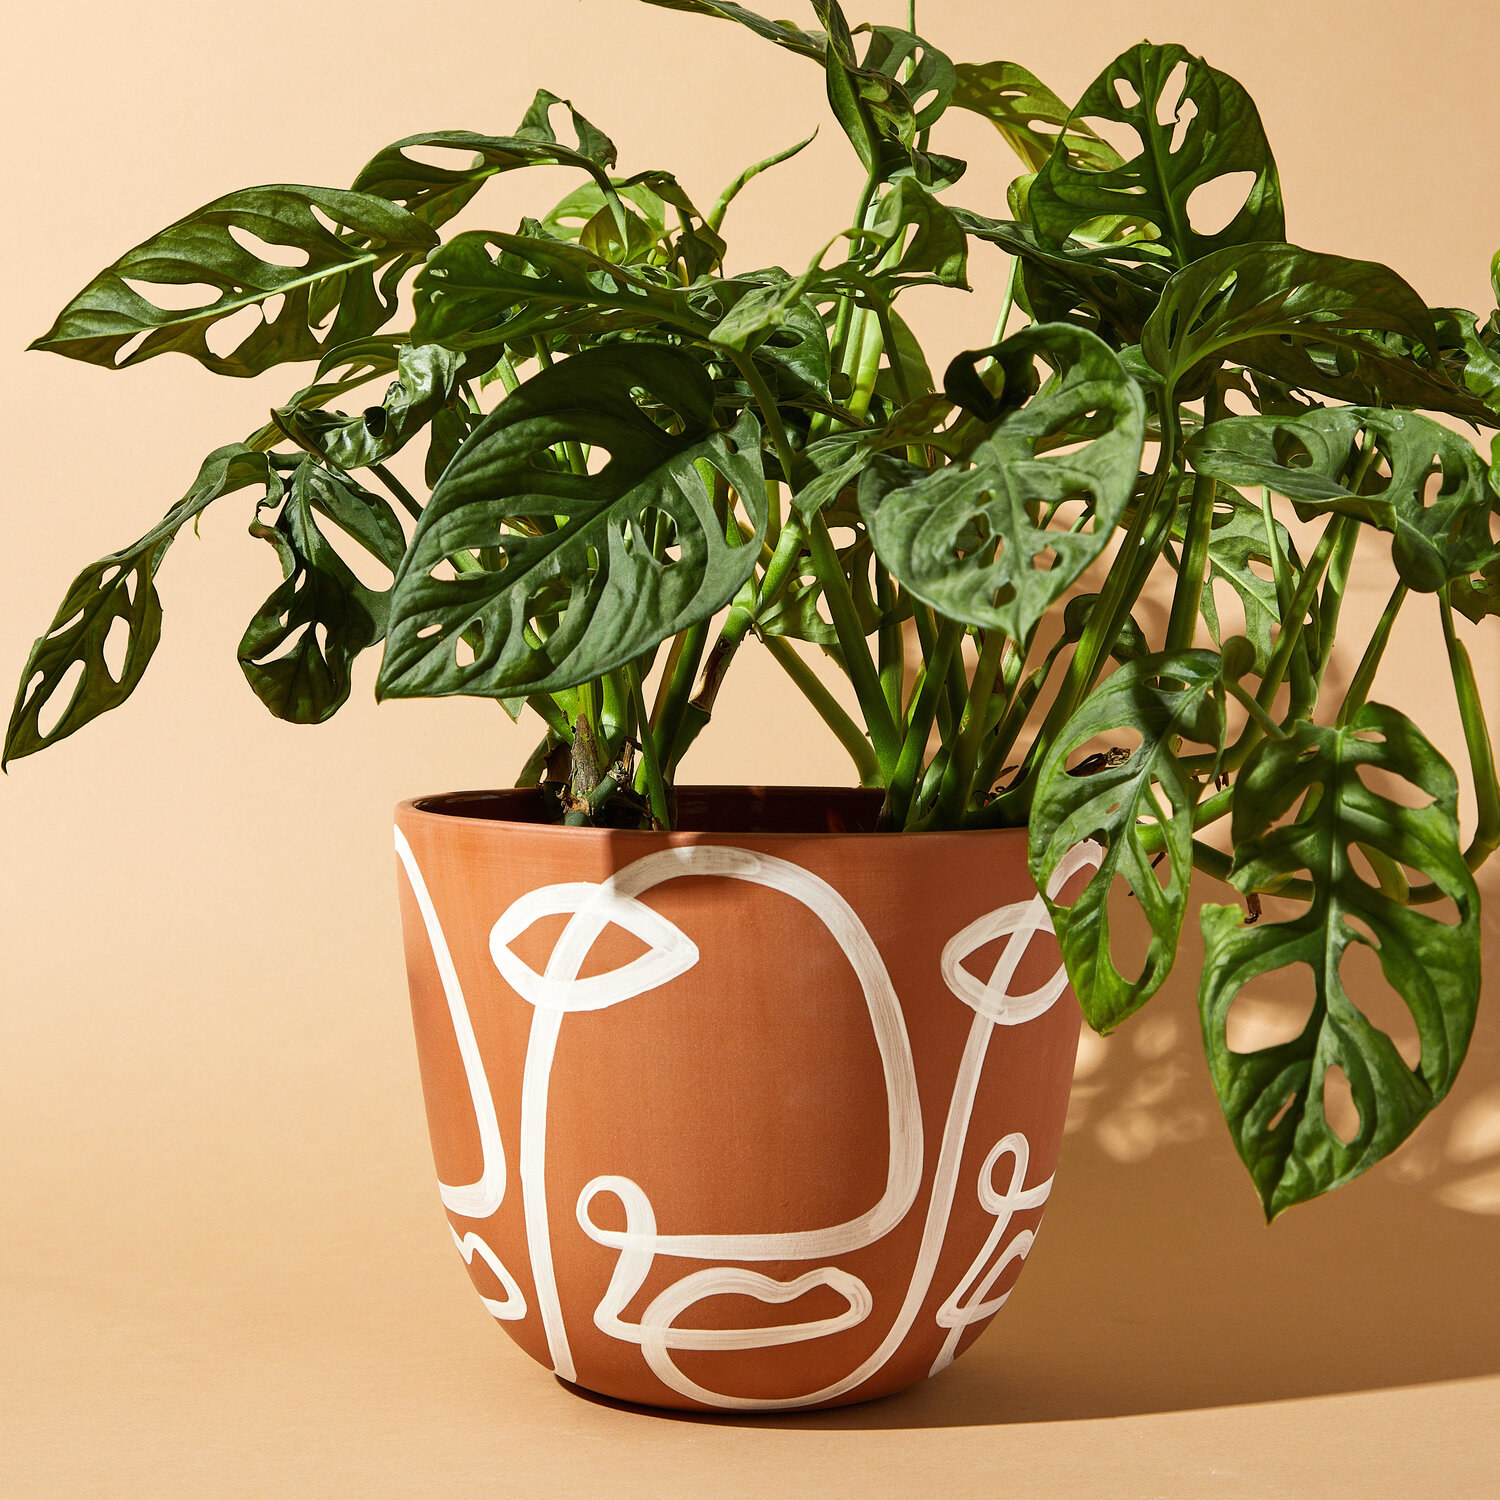 The terracotta pot with white painted face-like images all around and a plant growing out of it